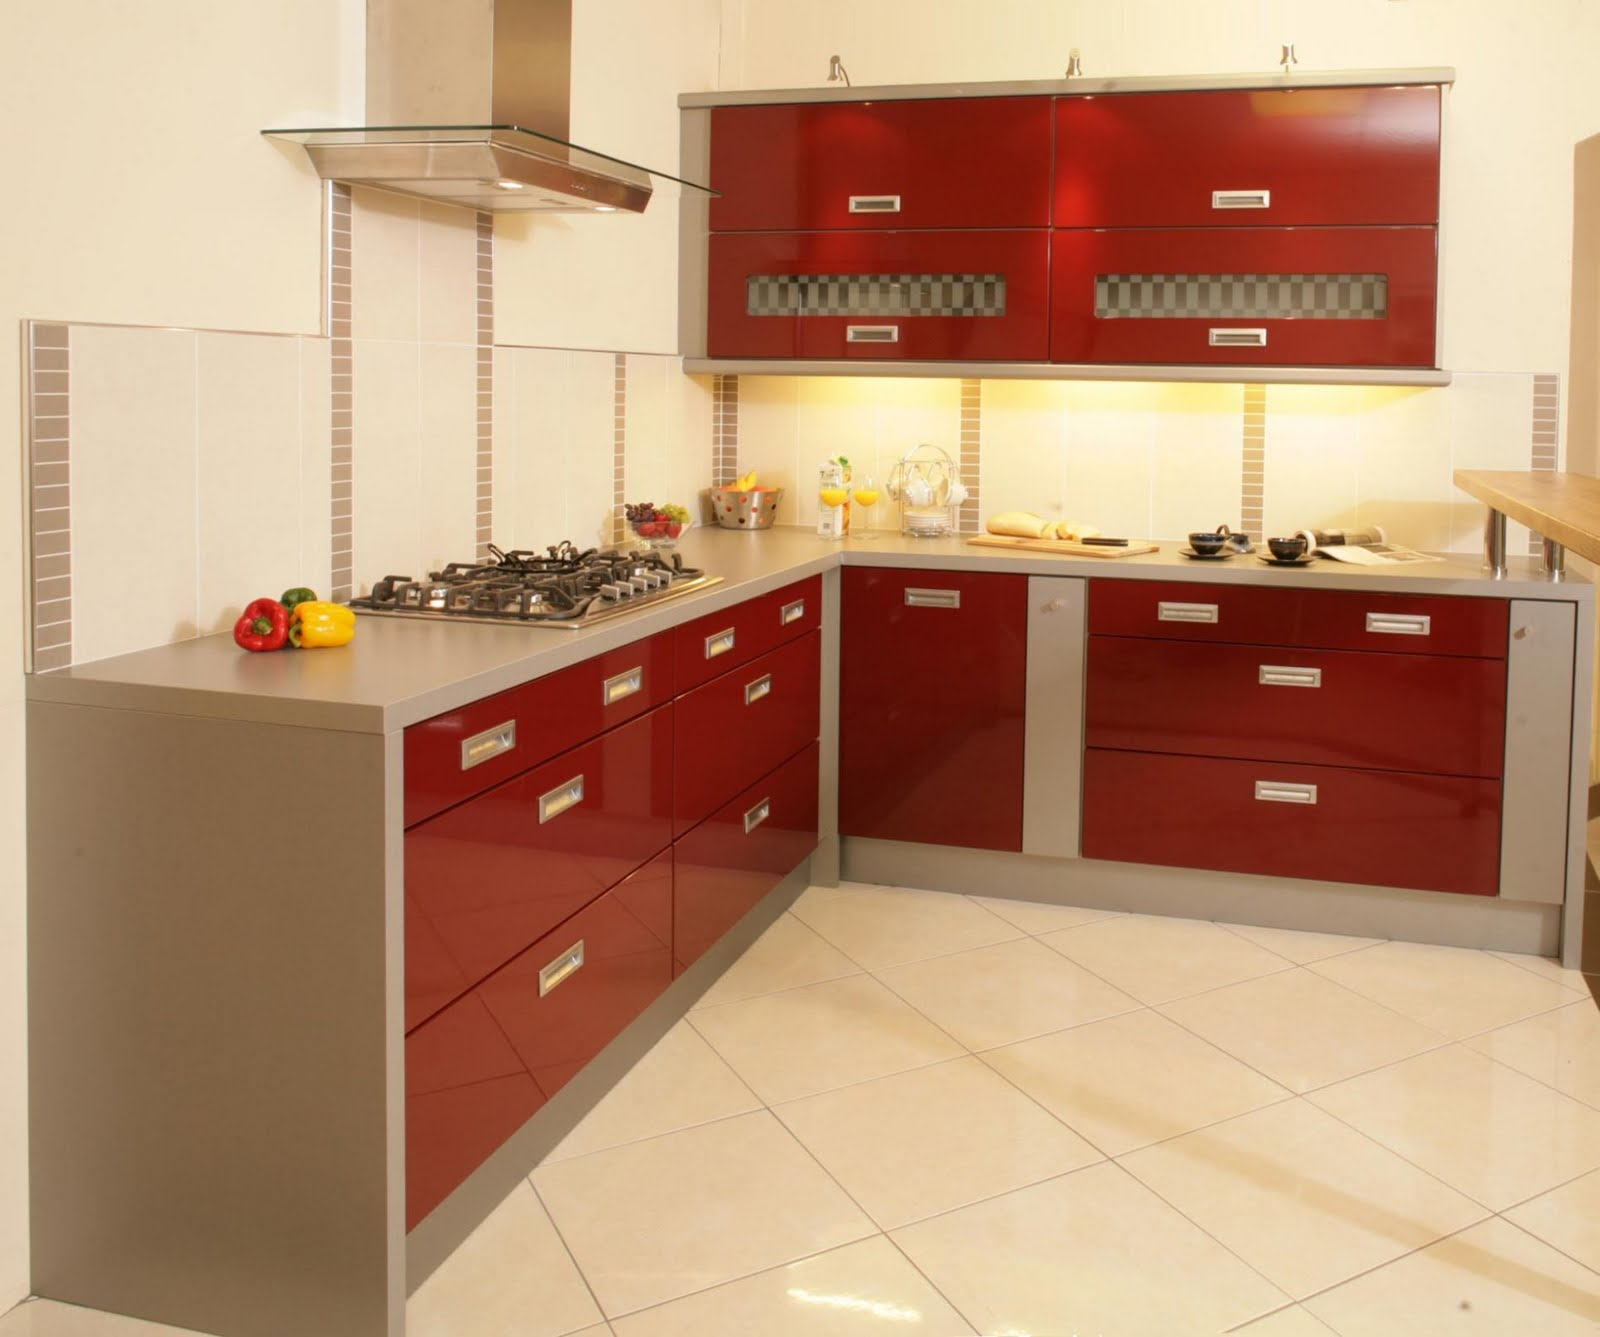 Kitchen Interior Design: Pictures Of Red Kitchen Cabinets